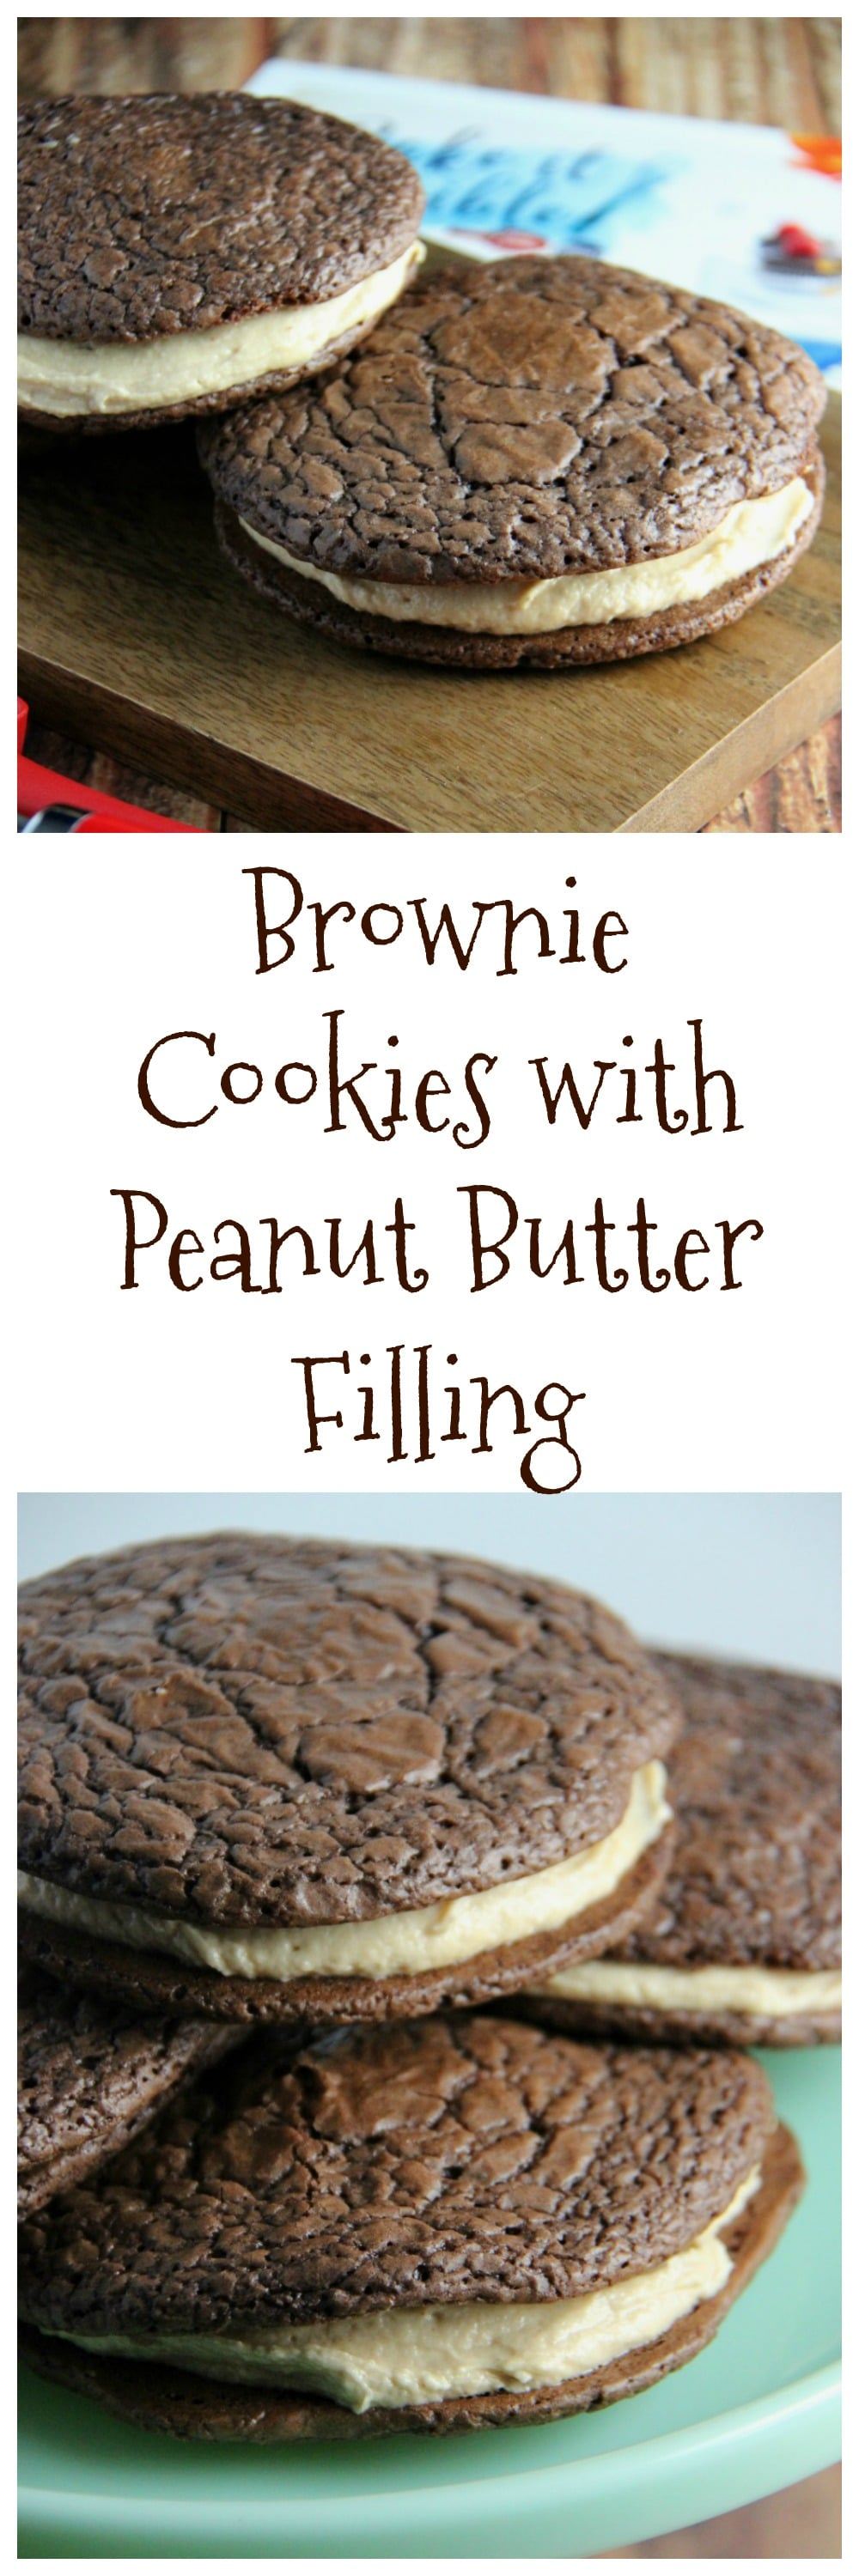 Brownie Cookie with Peanut Butter Filling